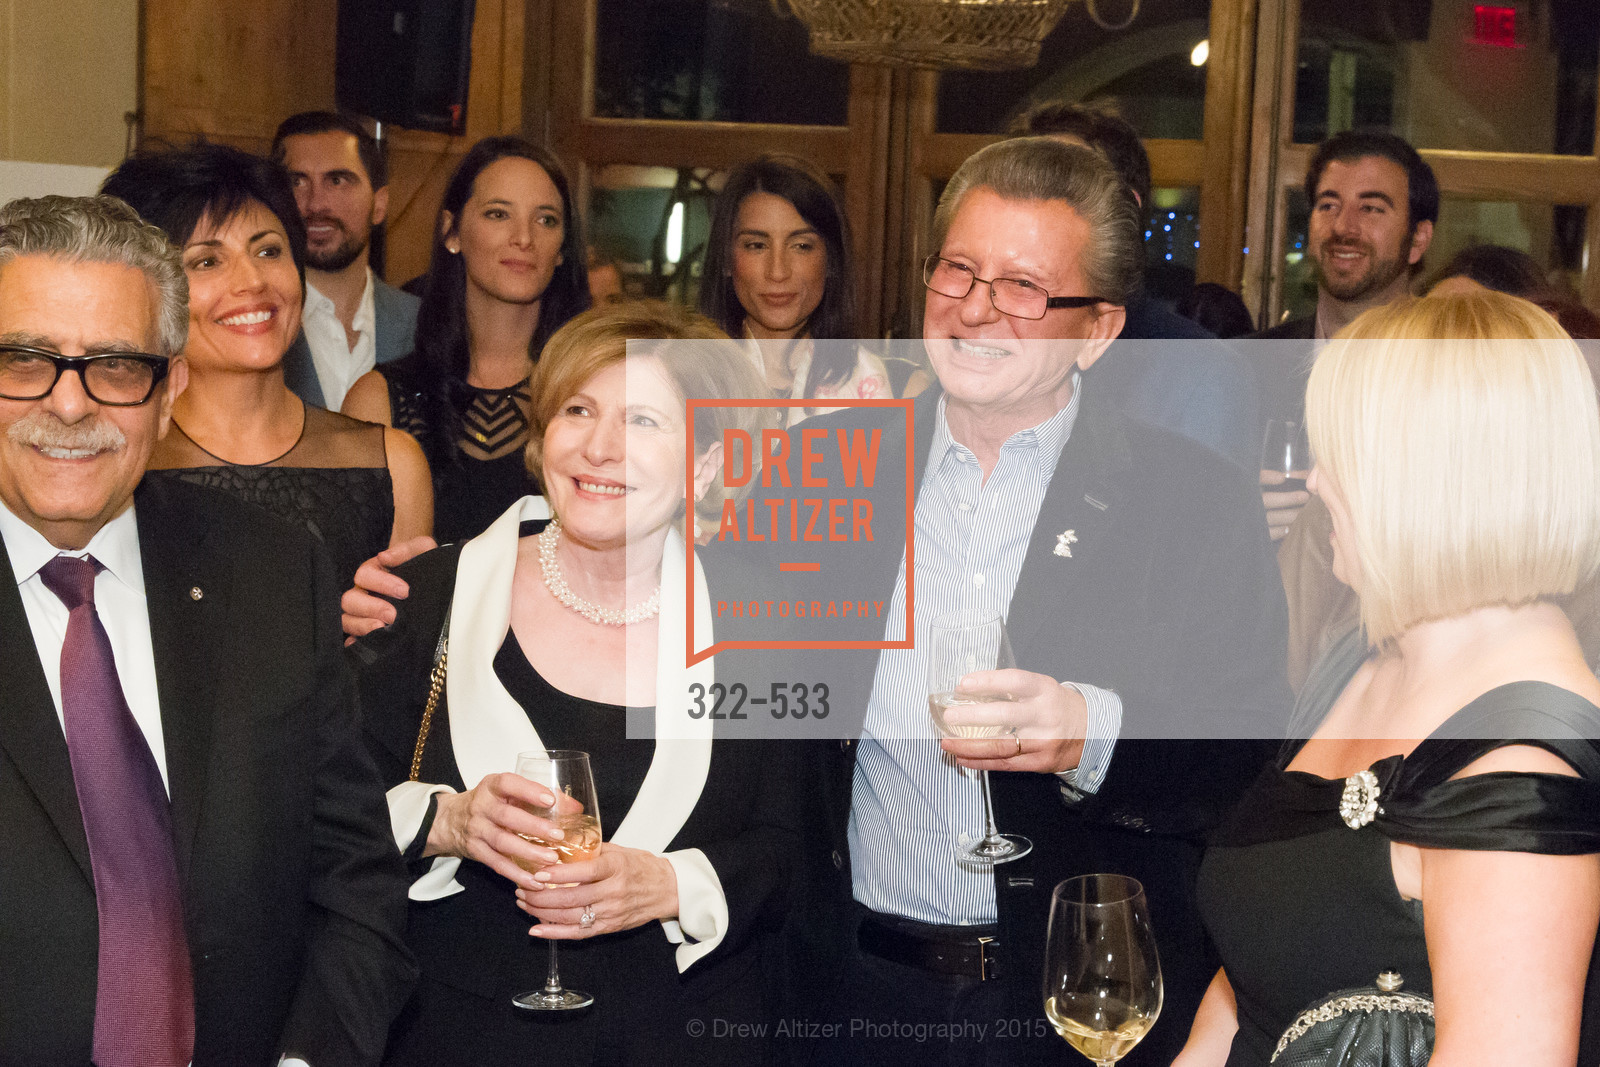 Tula Mouroufas, George Marcus, Hellenic Charity Ball Cocktail Reception, Kokkari. 200 Jackson St, San Francisco, CA 94111, November 13th, 2015,Drew Altizer, Drew Altizer Photography, full-service agency, private events, San Francisco photographer, photographer california